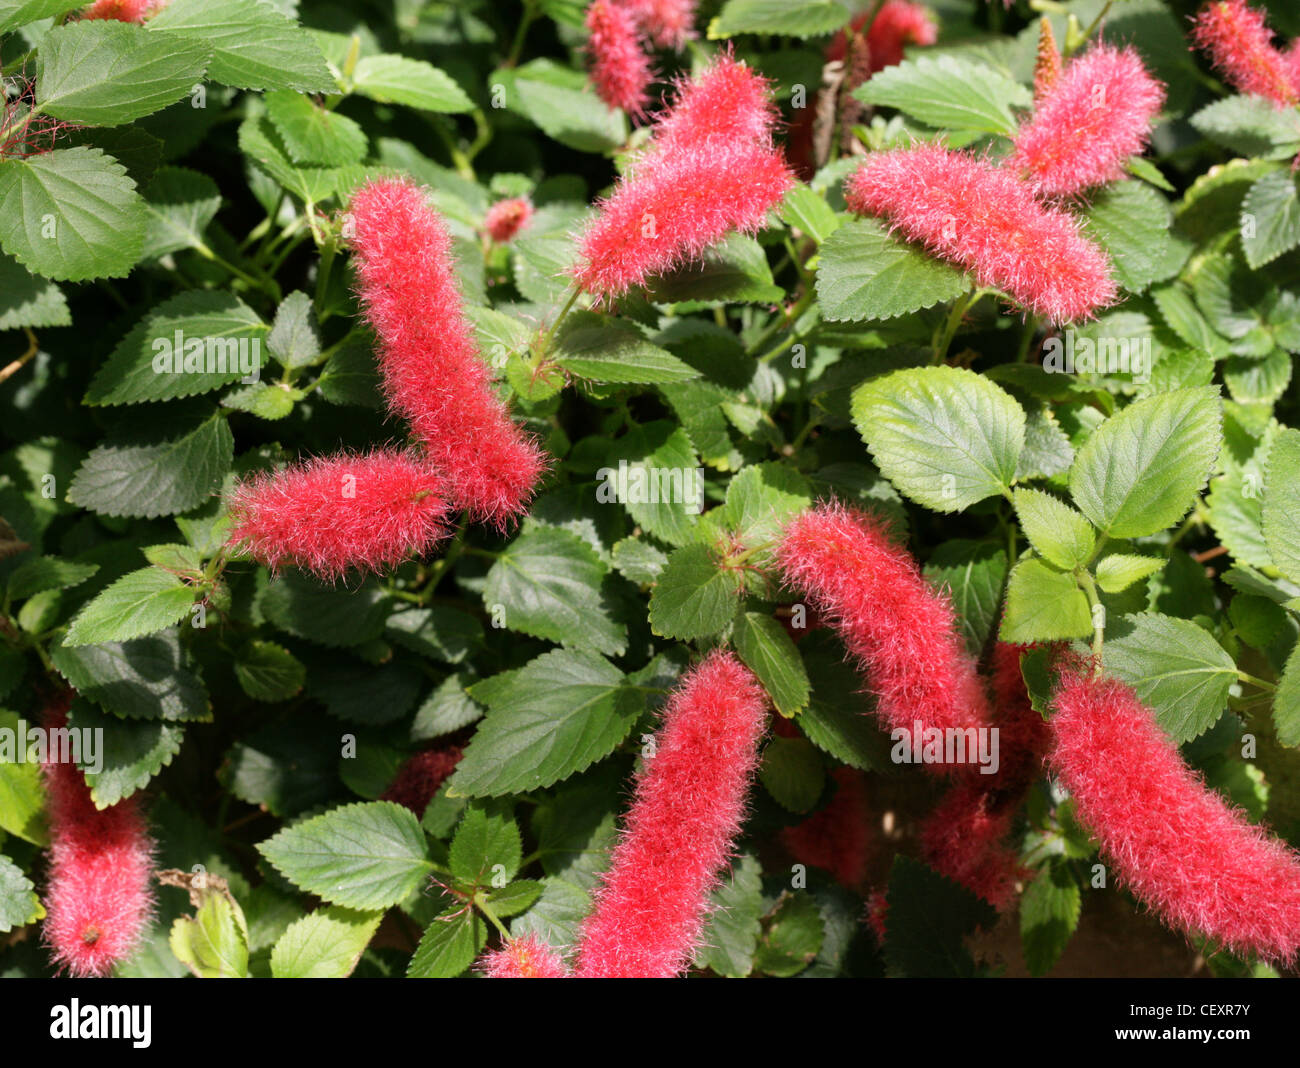 Dwarf Or Trailing Chenille Plant Strawberry Firetails Red Hot